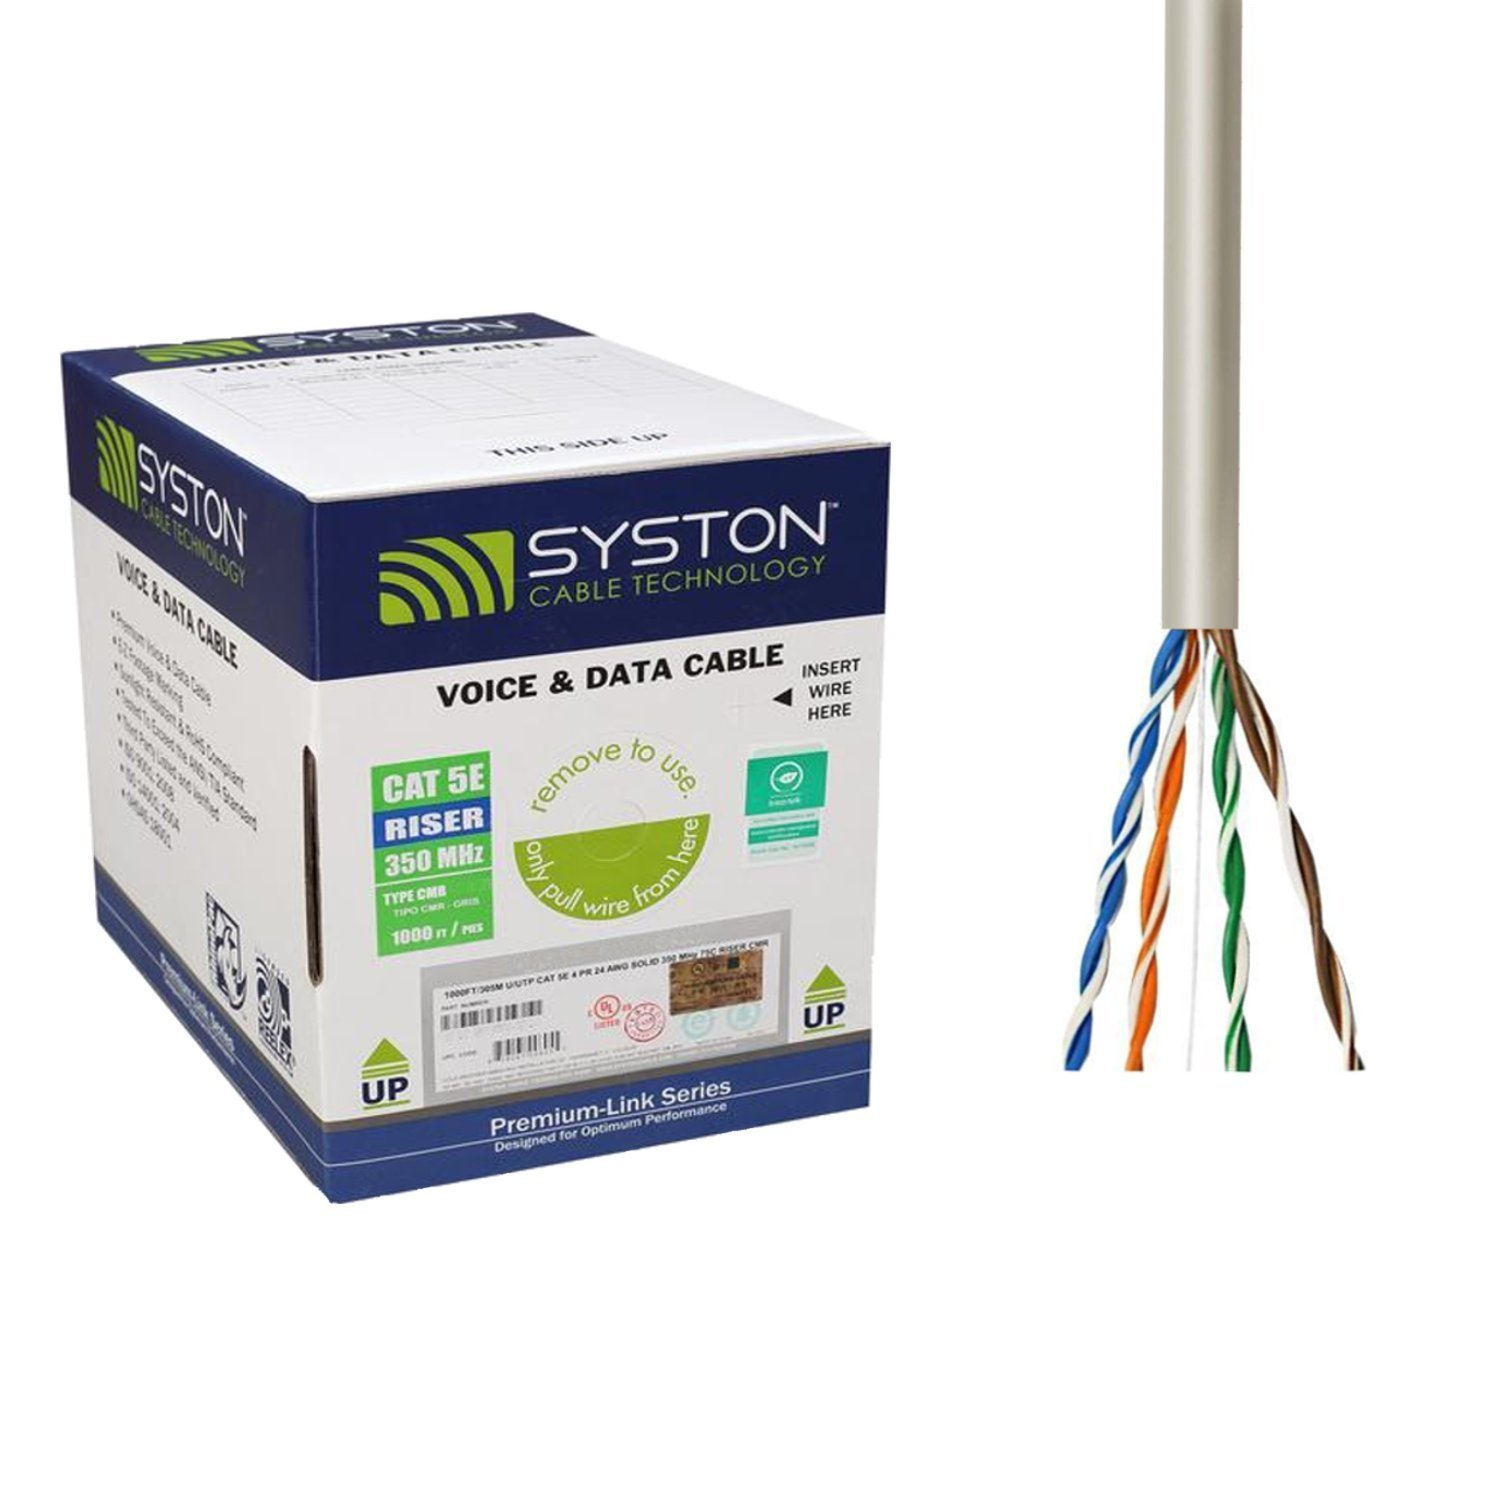 Cat5e Bulk Cable 500ft Pure Copper, Outdoor / Indoor Heat Resistant, Solid 350Mhz, 24AWG, UTP, Riser Rated CMR, Gray by Syston Cable by Syston Cable Technology